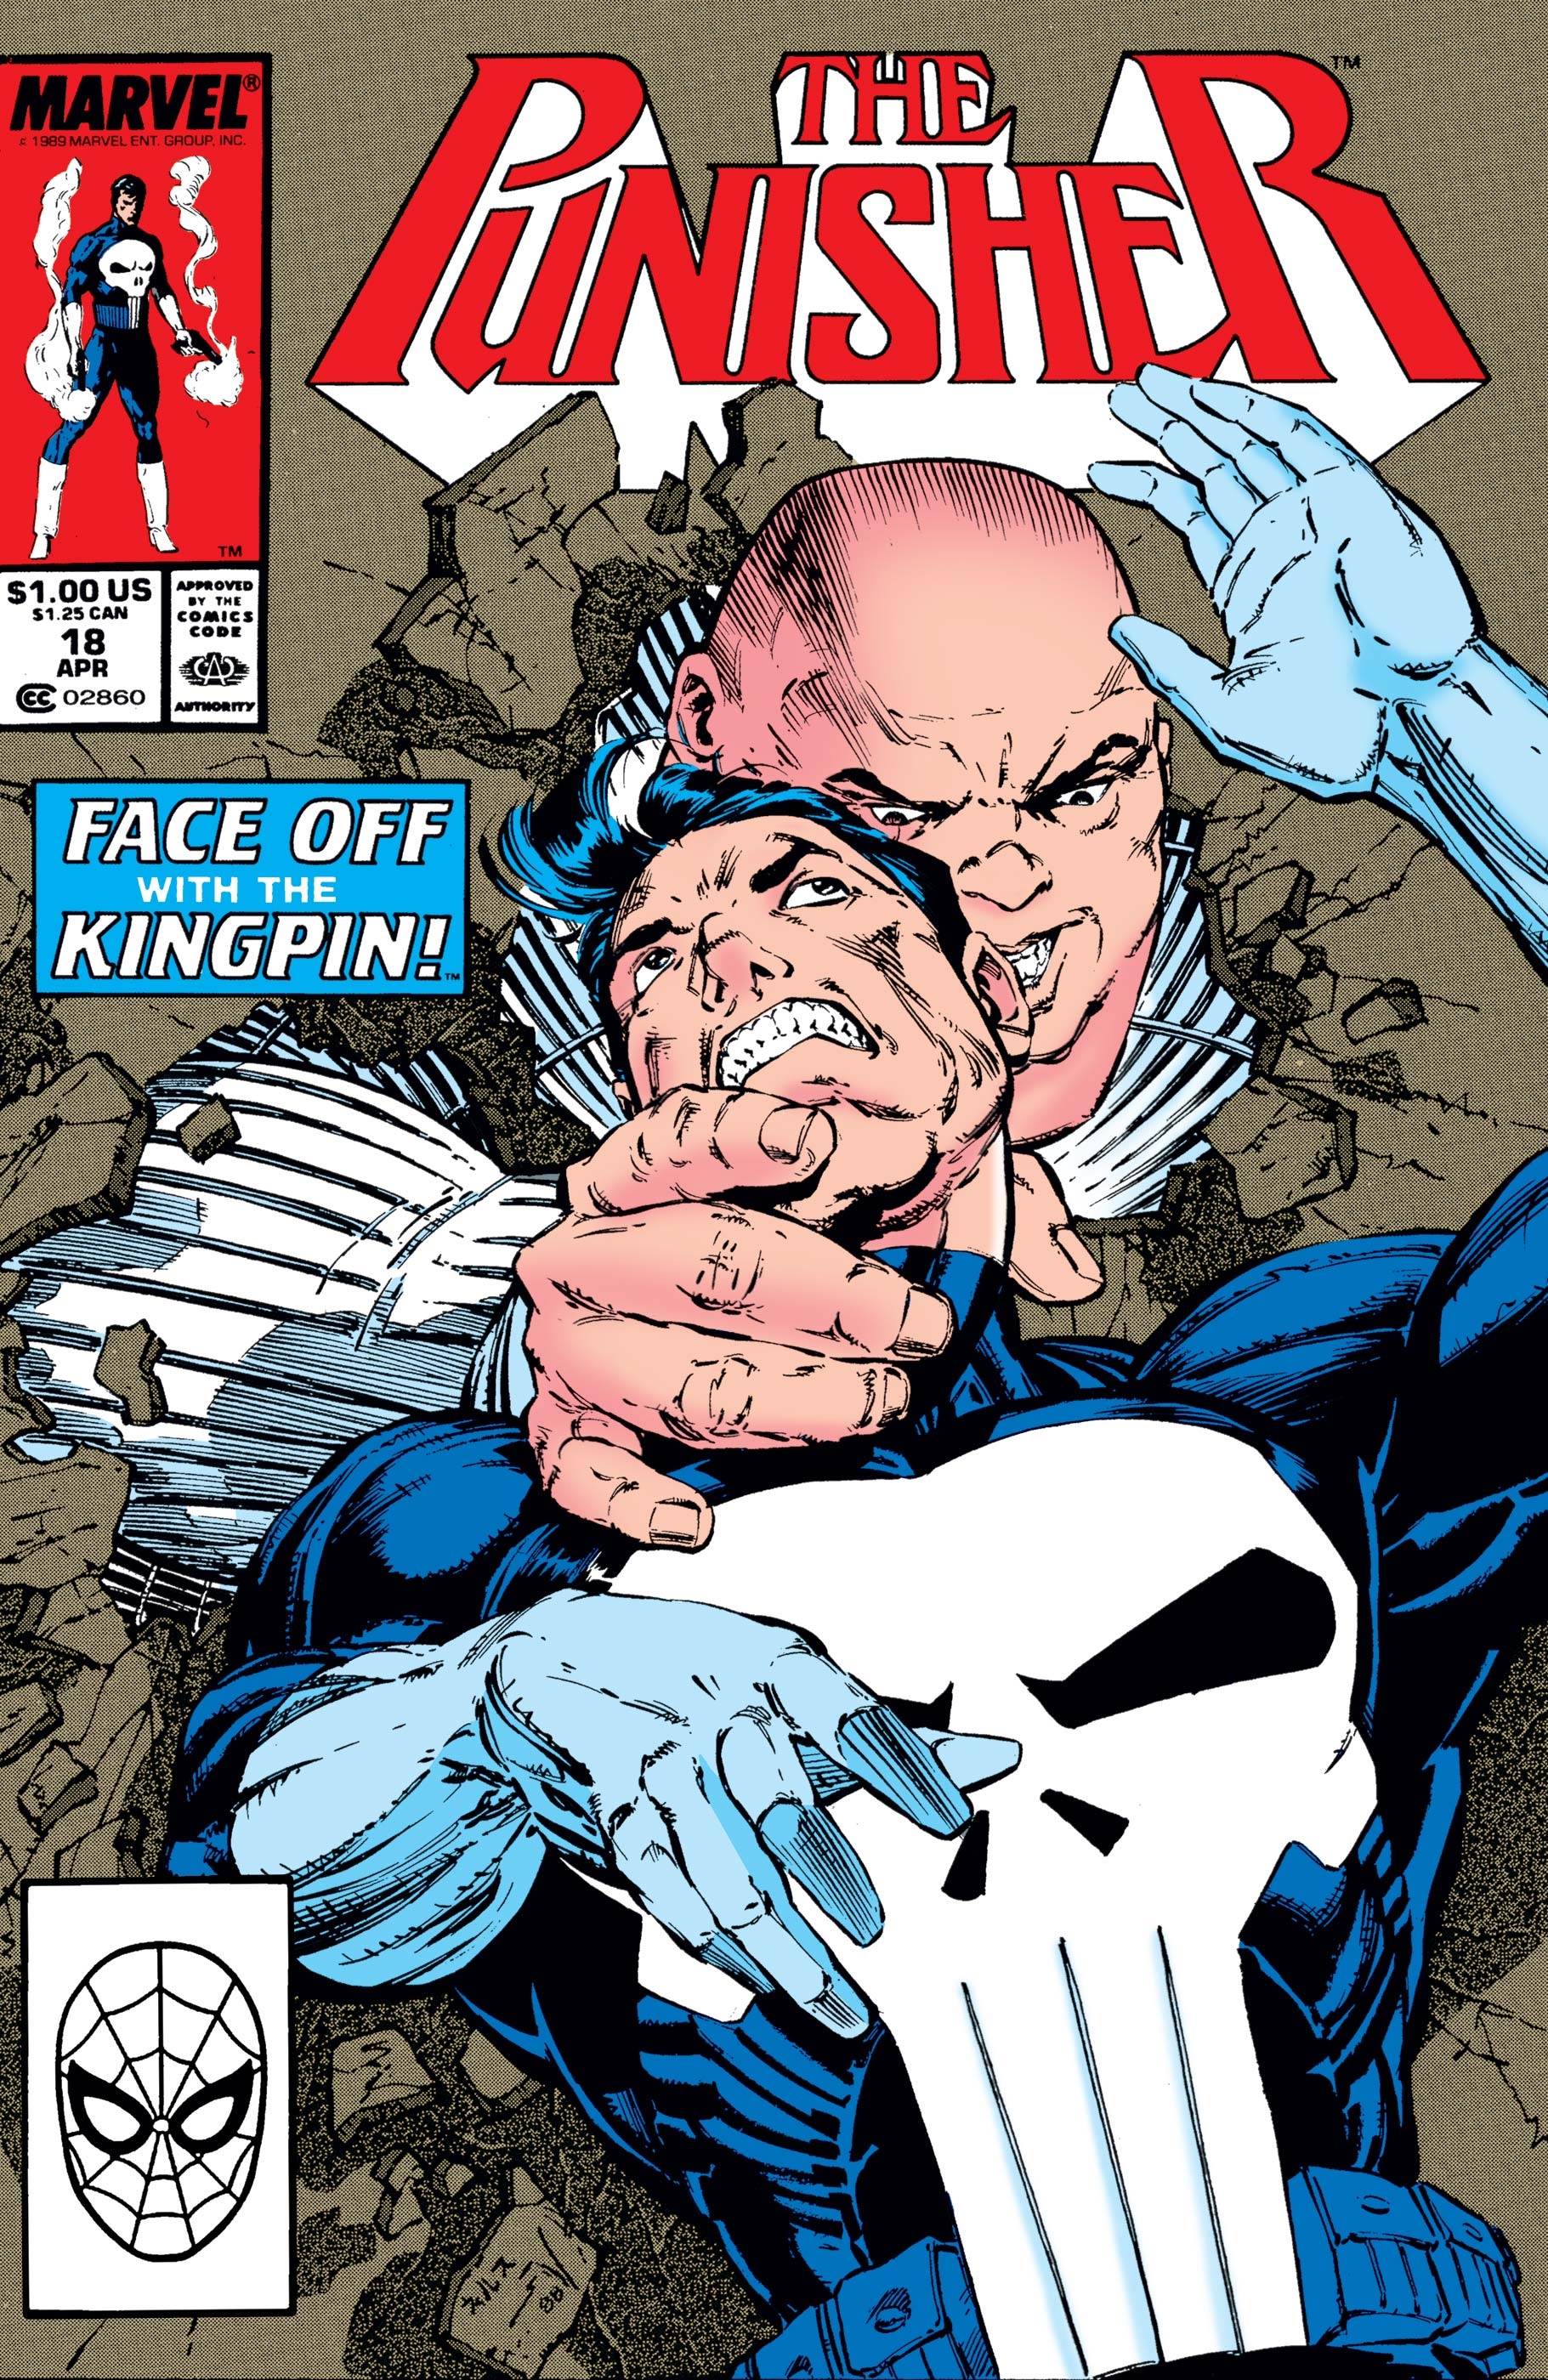 The Punisher (1987) #18